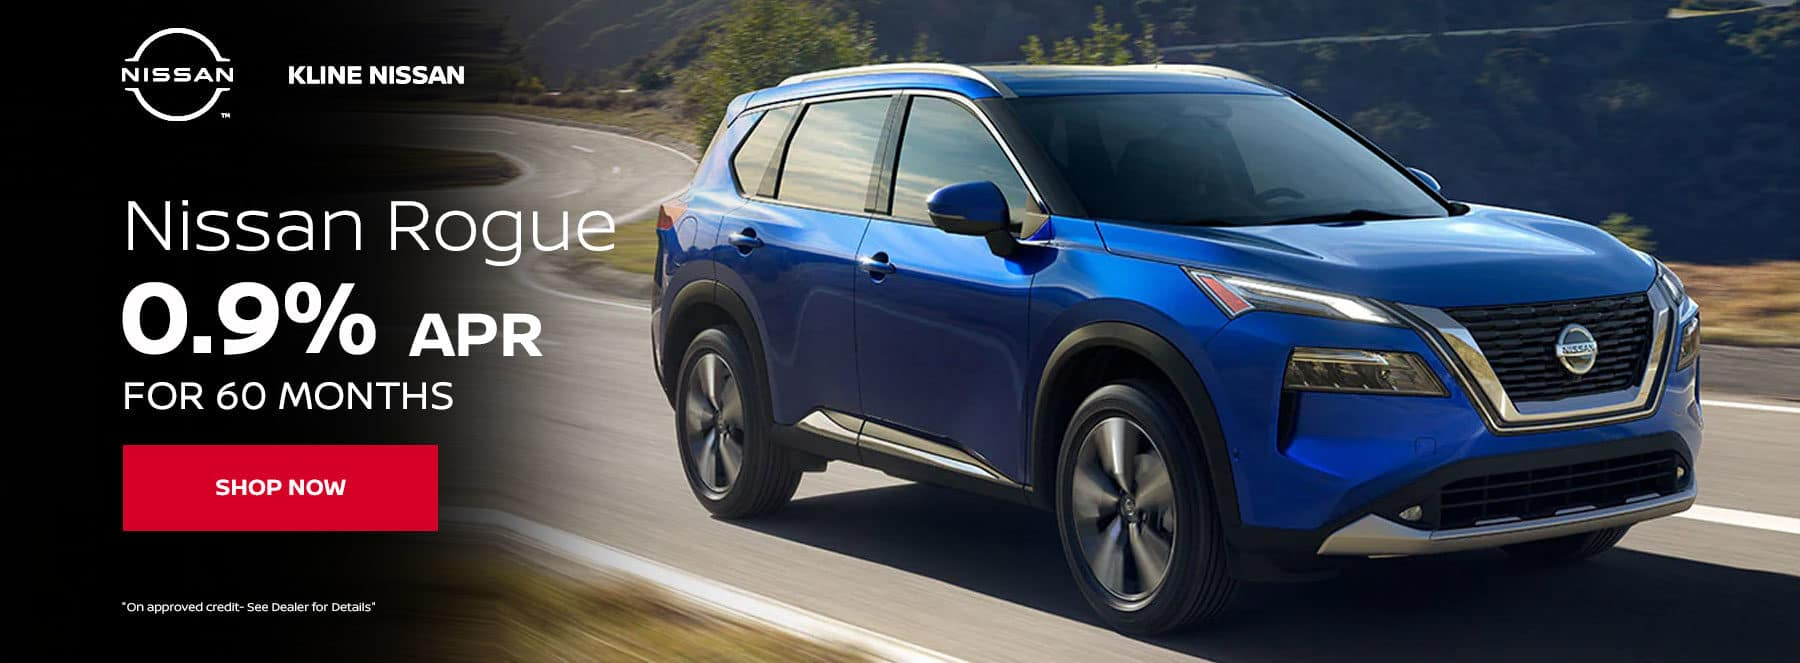 Rogue 0.9% APR for 60 months